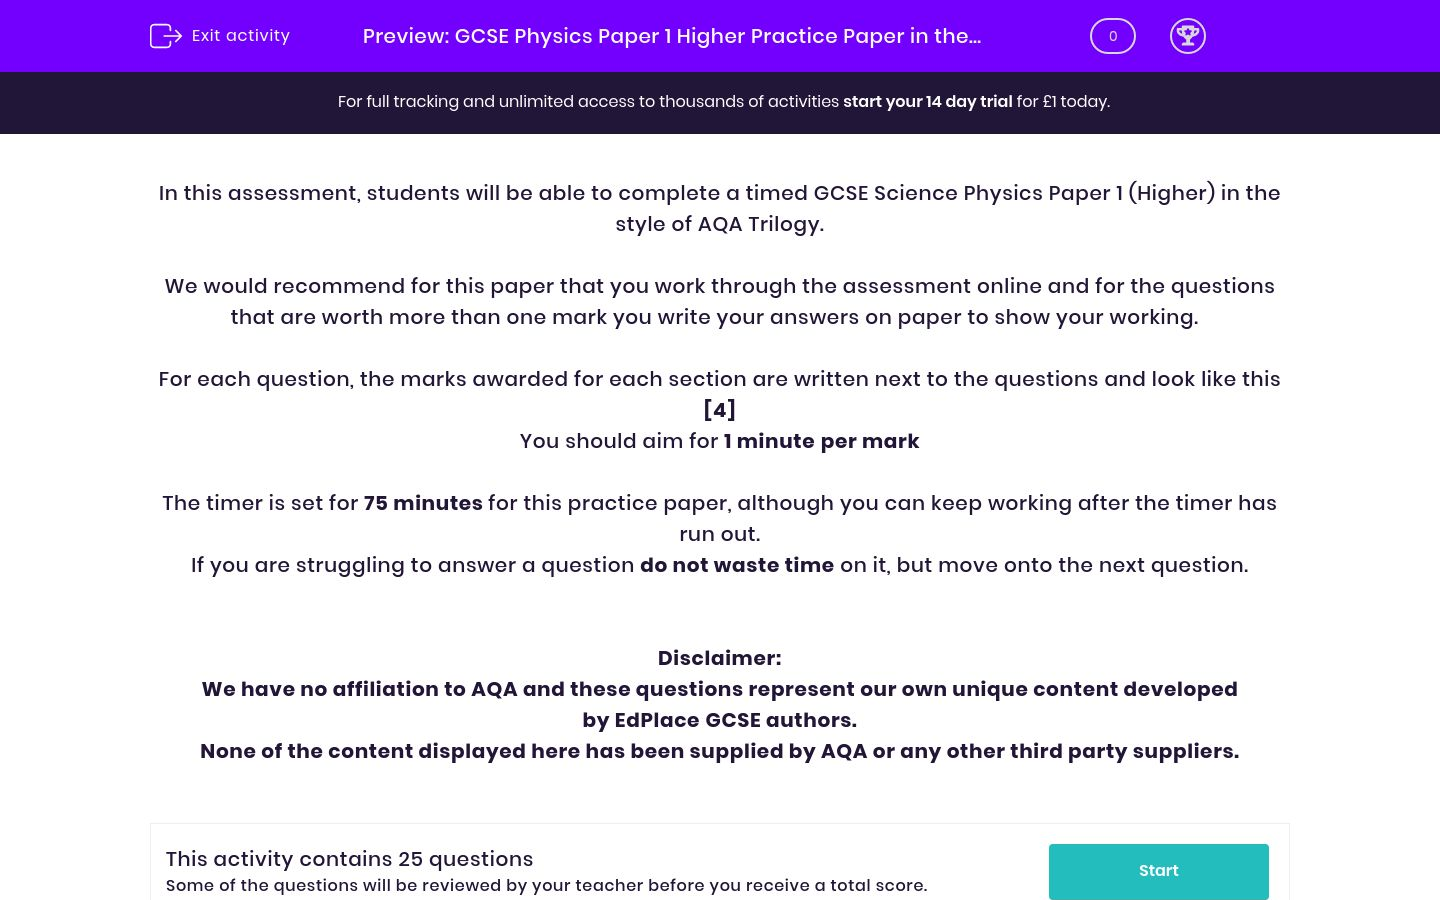 'GCSE Physics Paper 1 Higher Practice Paper in the Style of AQA Trilogy' worksheet